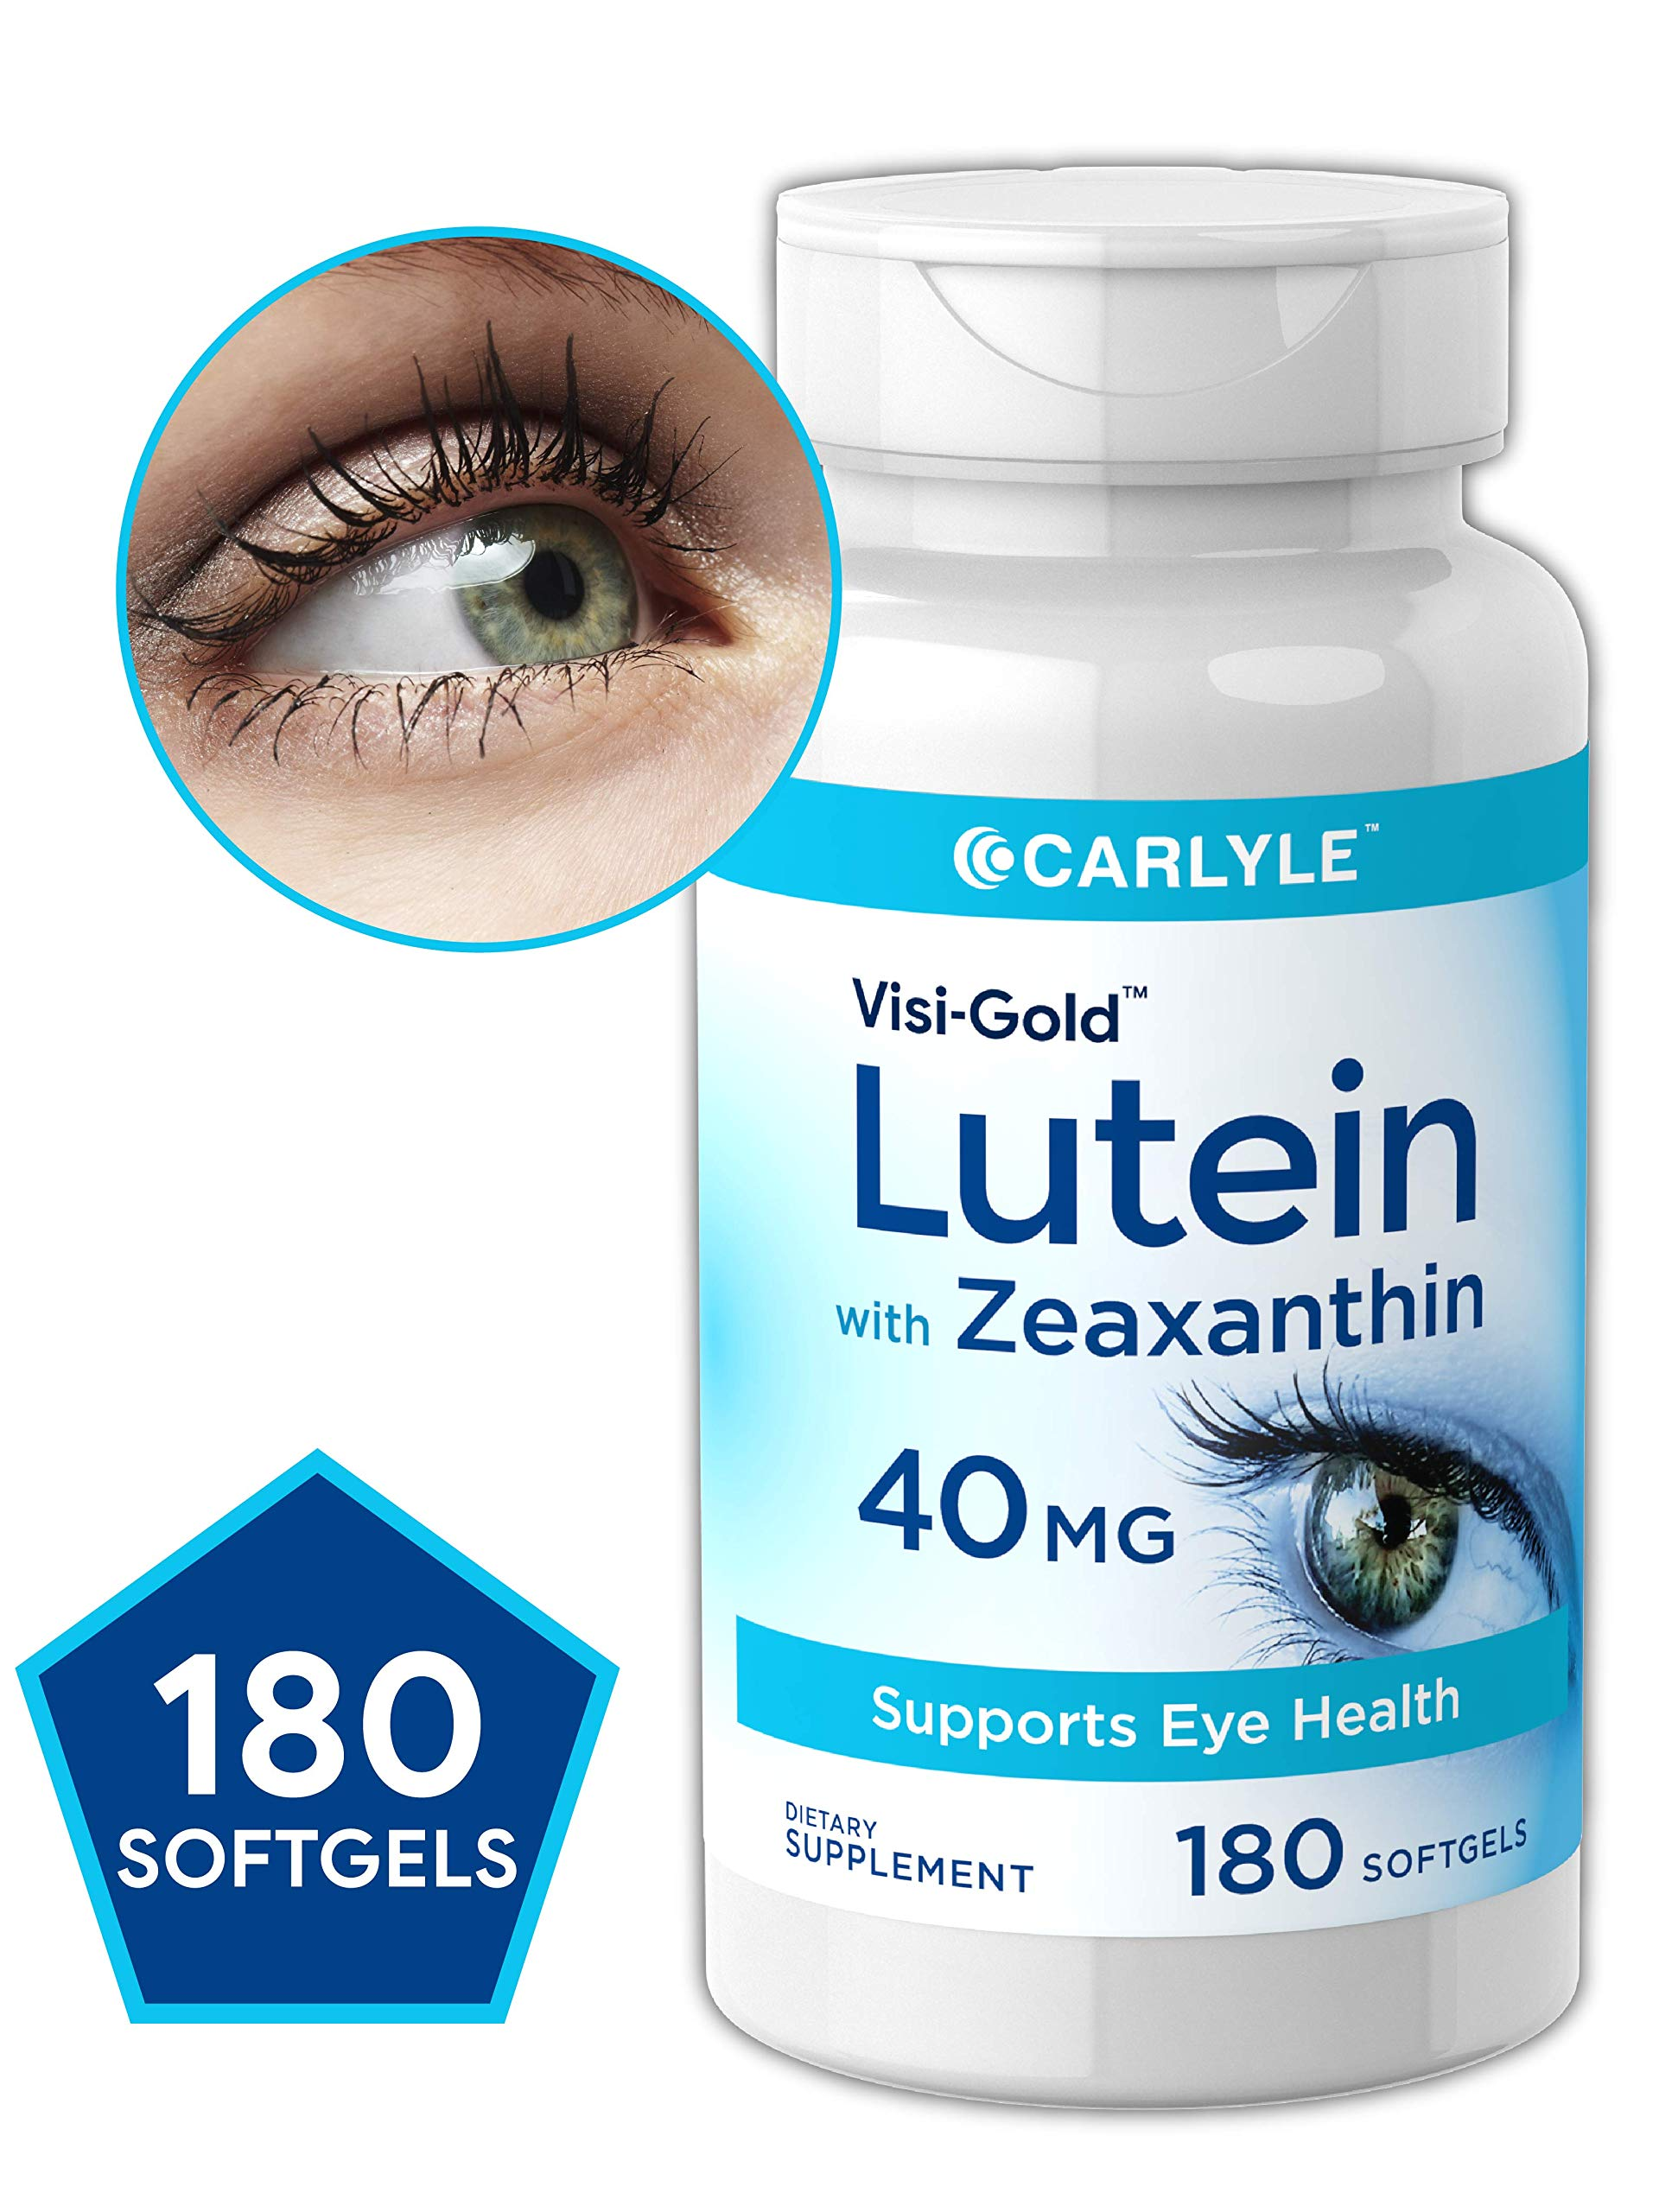 Lutein and Zeaxanthin 40 mg | 180 Softgels | Supports Eye Health | Non-GMO, Gluten Free Supplement | by Carlyle by Carlyle